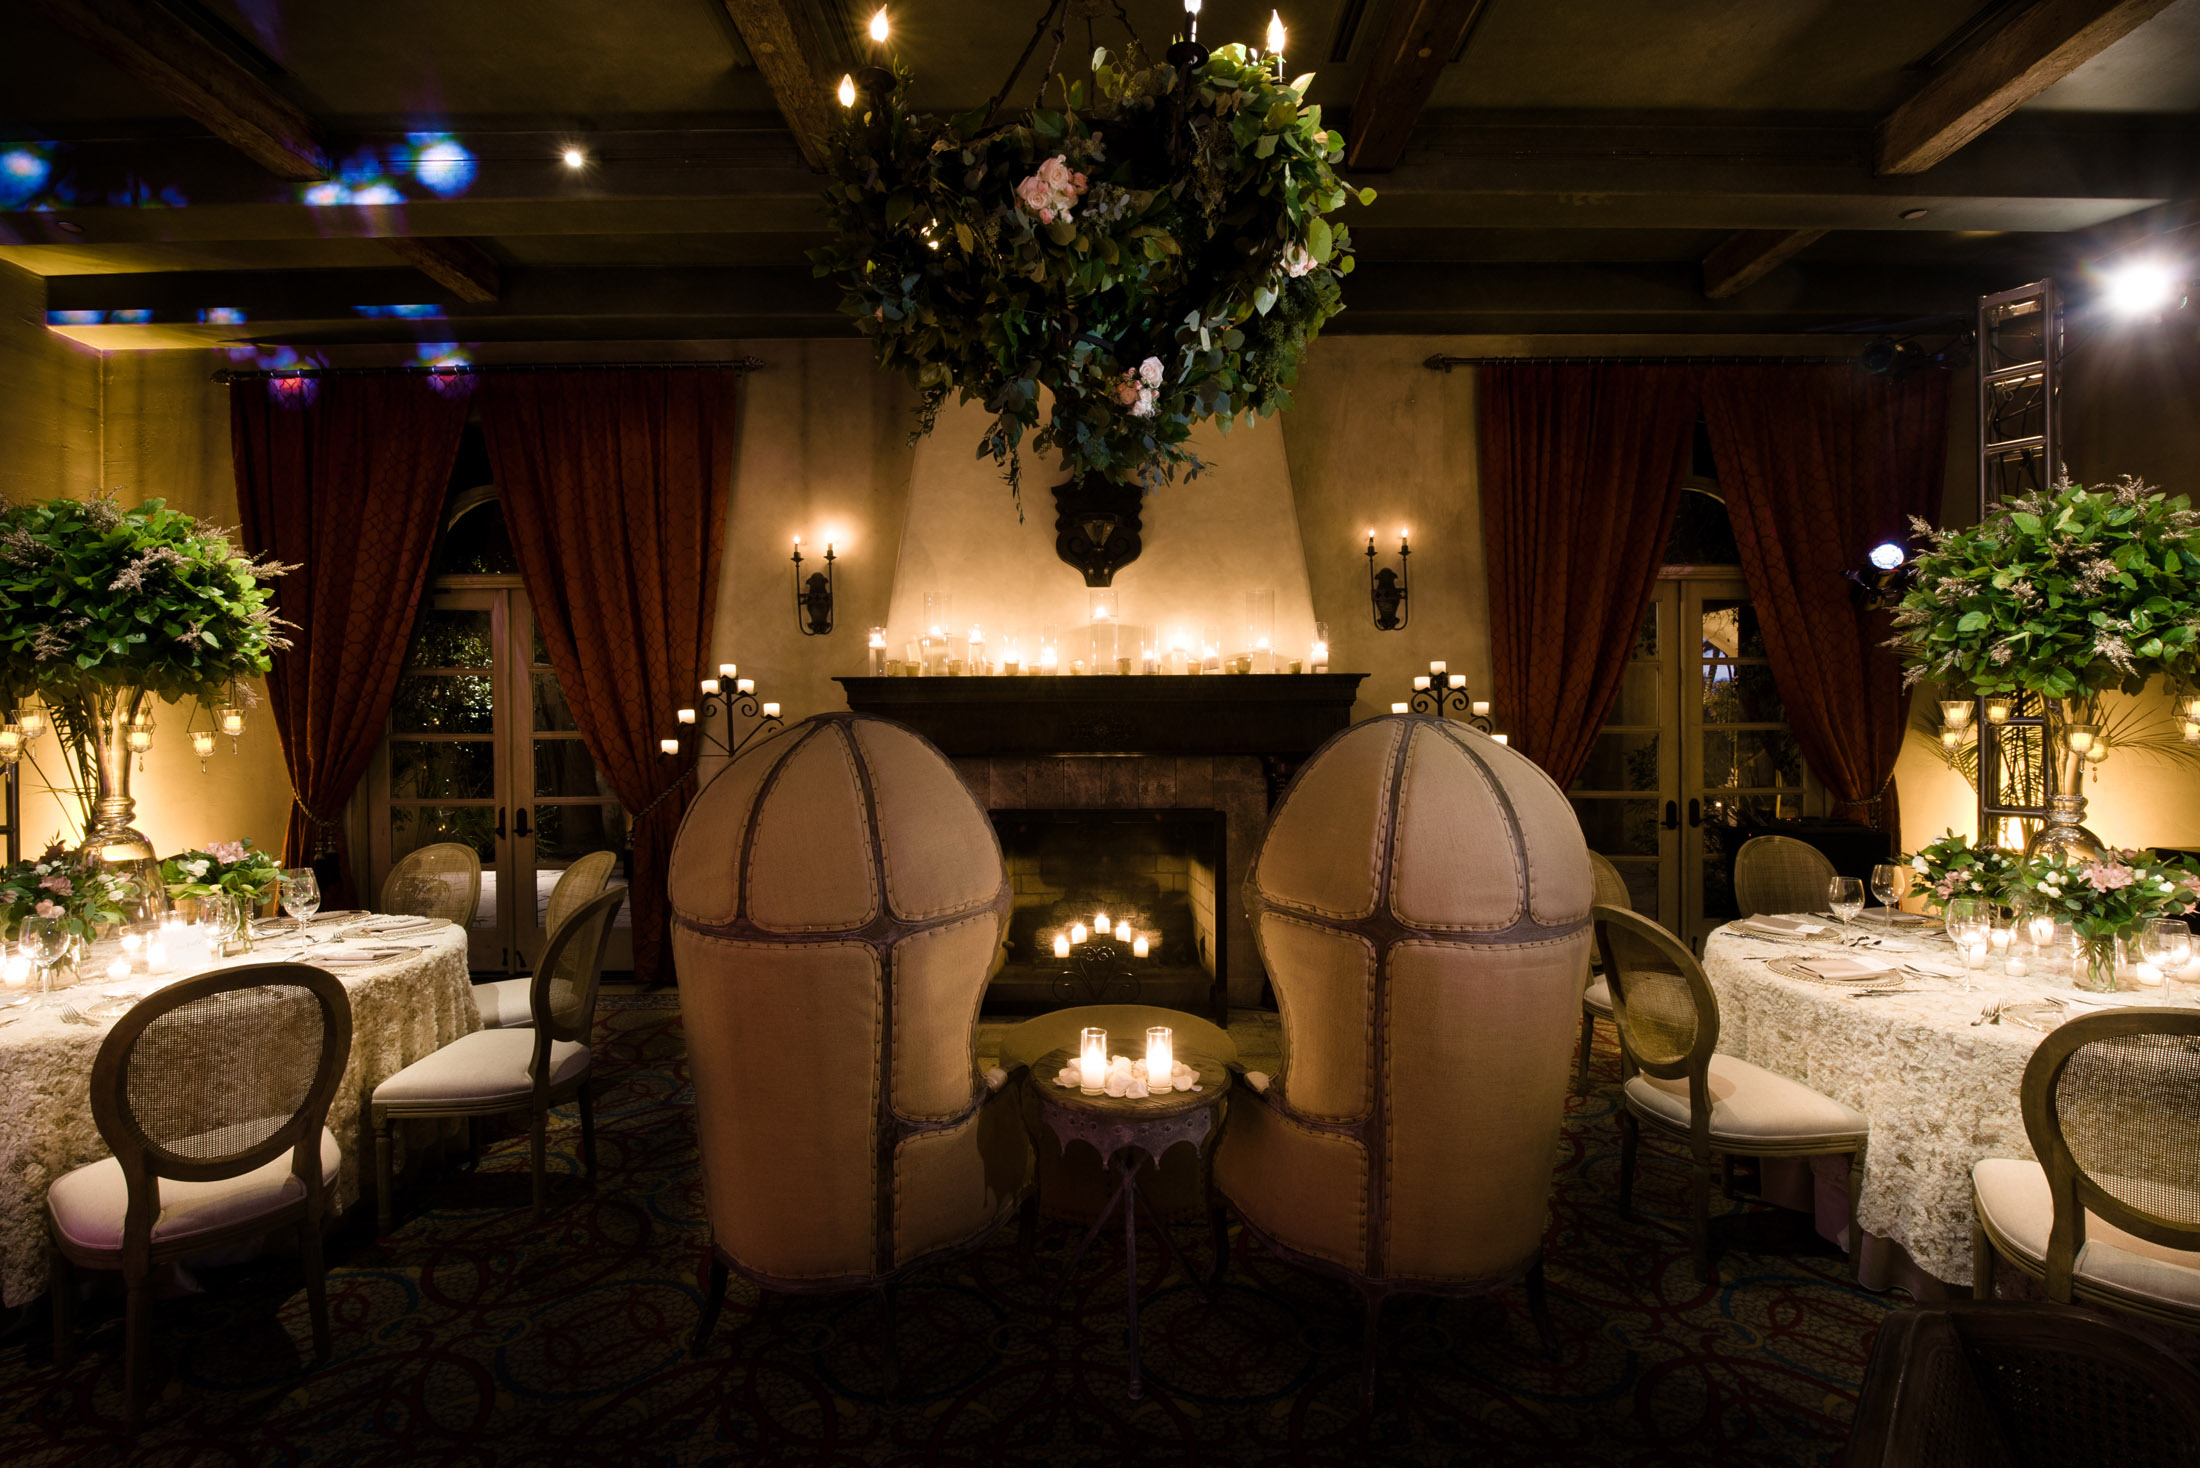 Warm lounge seating at luxury wedding conference Reverie Retreat. Featured by Speaker and Las Vegas Wedding Planner www.AndreaEppolitoEvents.com. Photo by Cameron Kelly Studio.